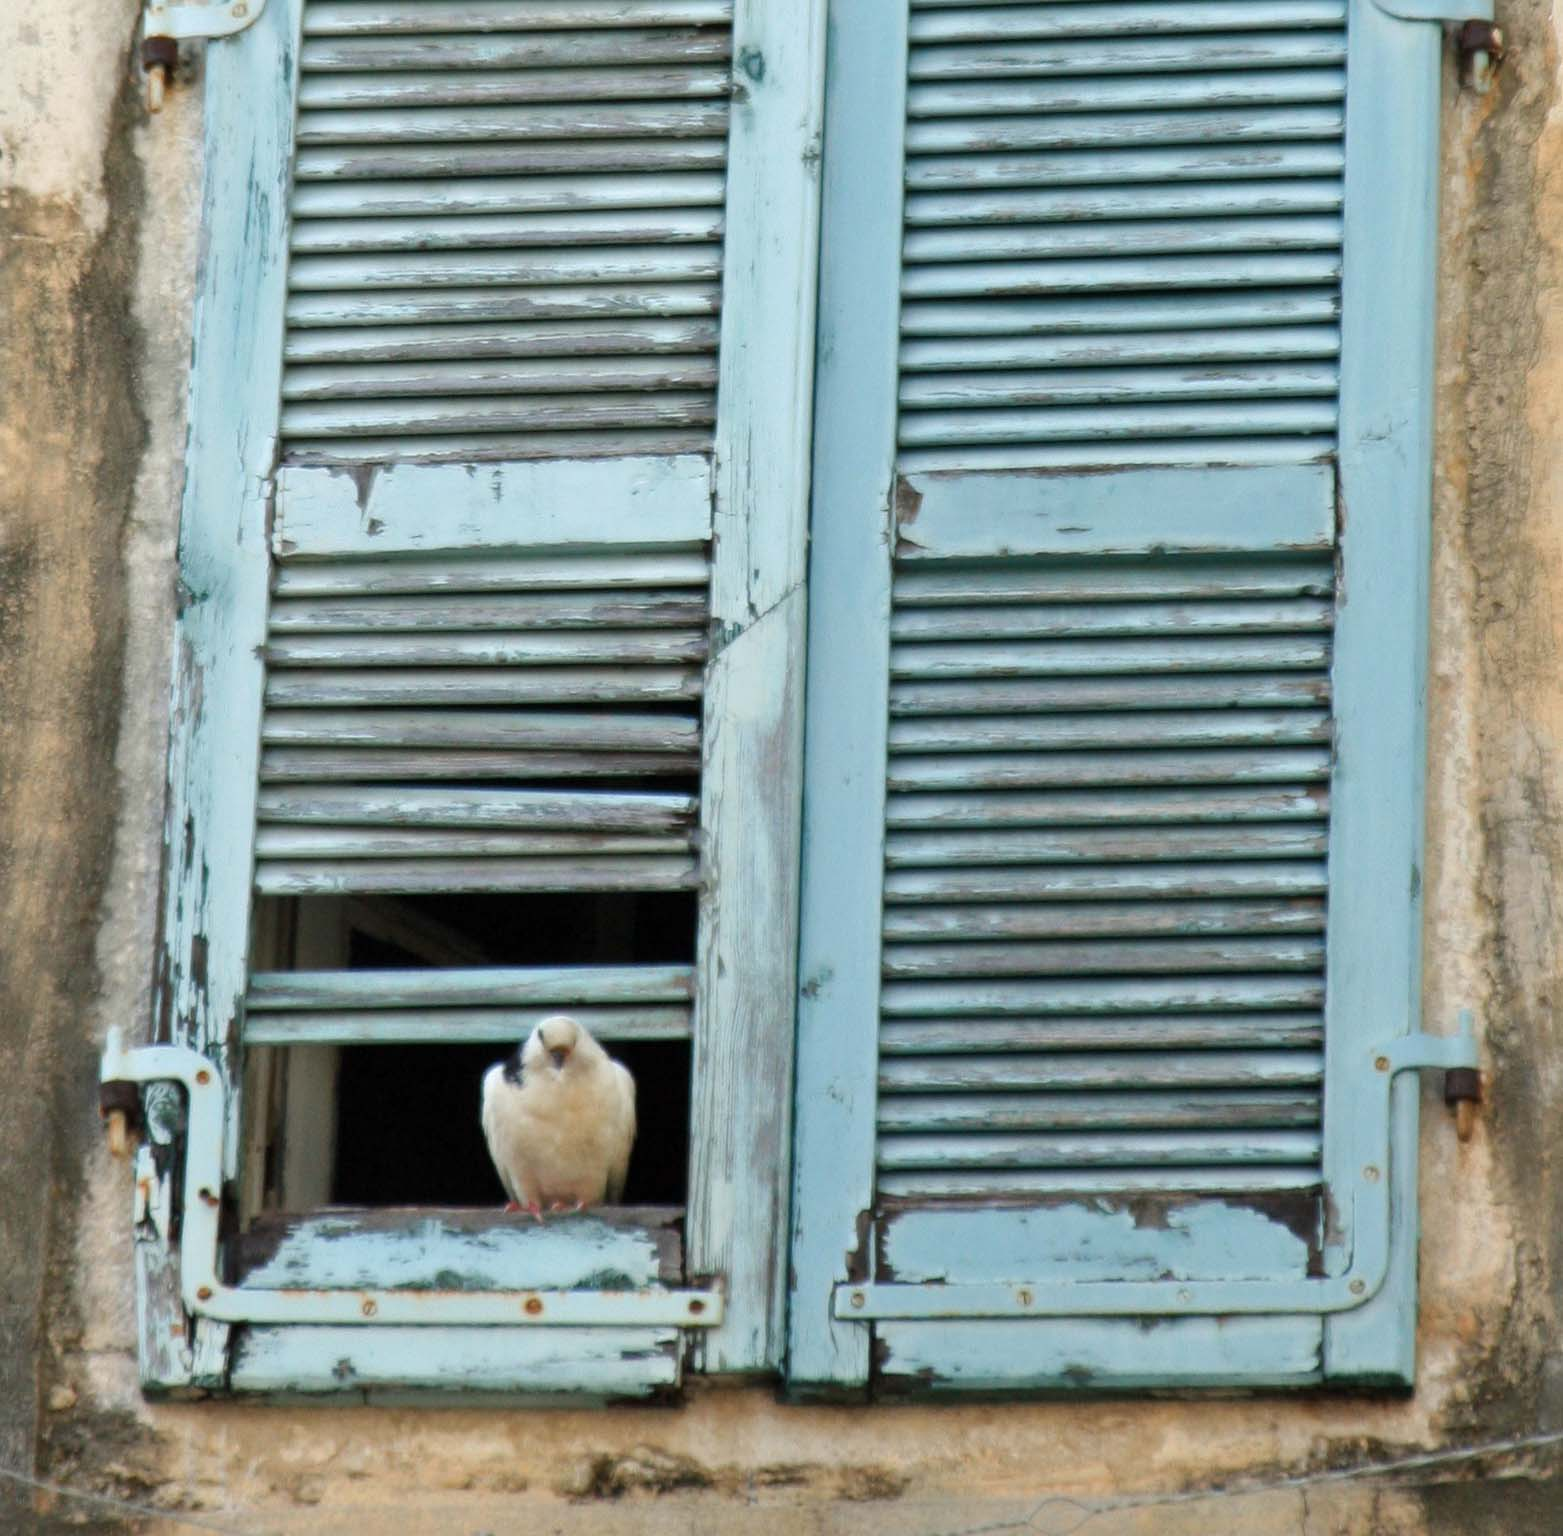 Peggy found this pigeon hanging out on the broken shutters of an abandoned building.